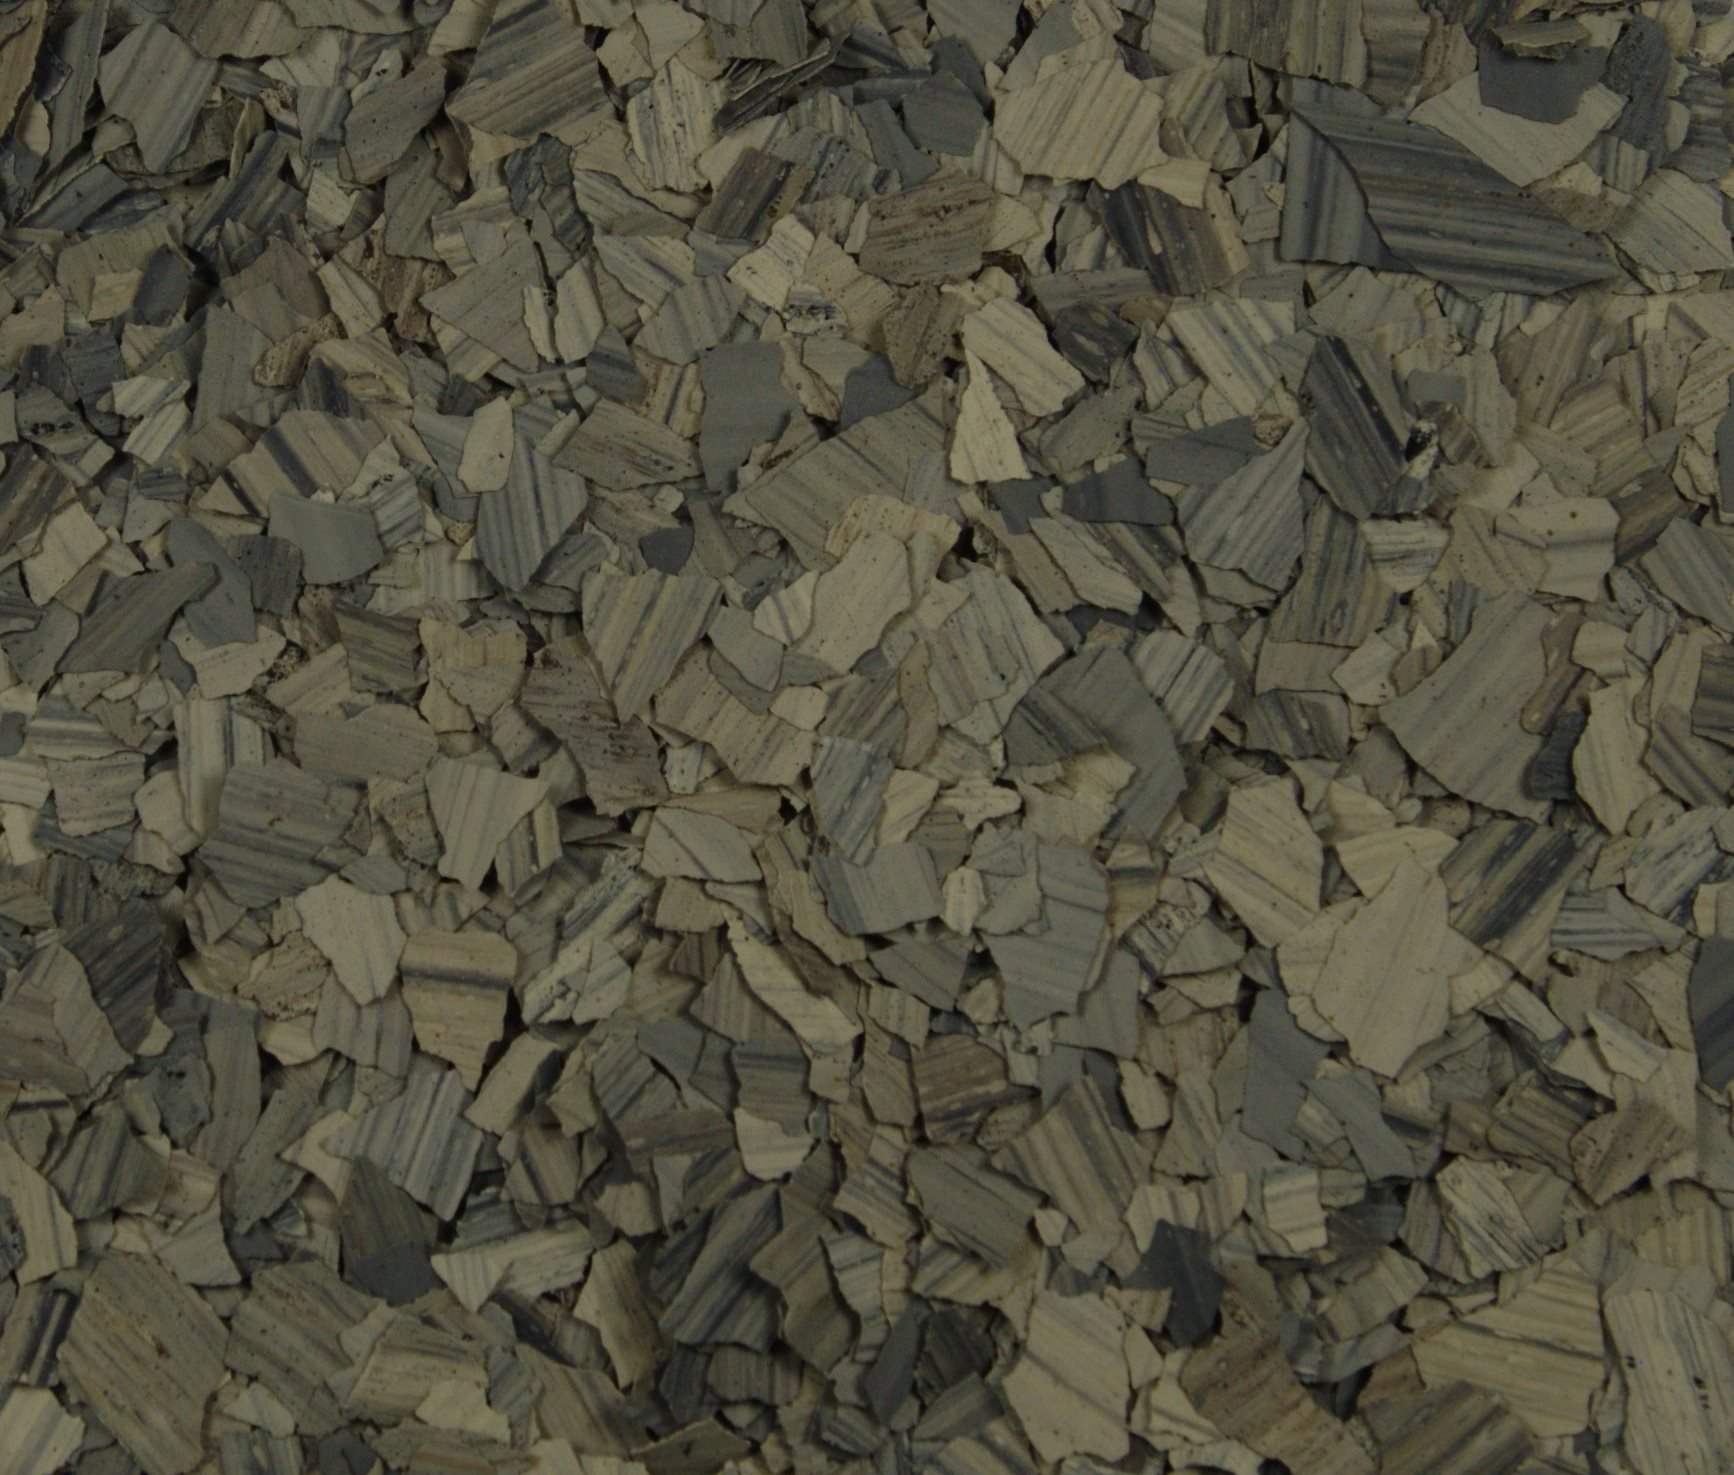 American Abrasive Supply, Vinyl Chip Blend Obsidian (Stone) 1/4'', VCPOBSIS